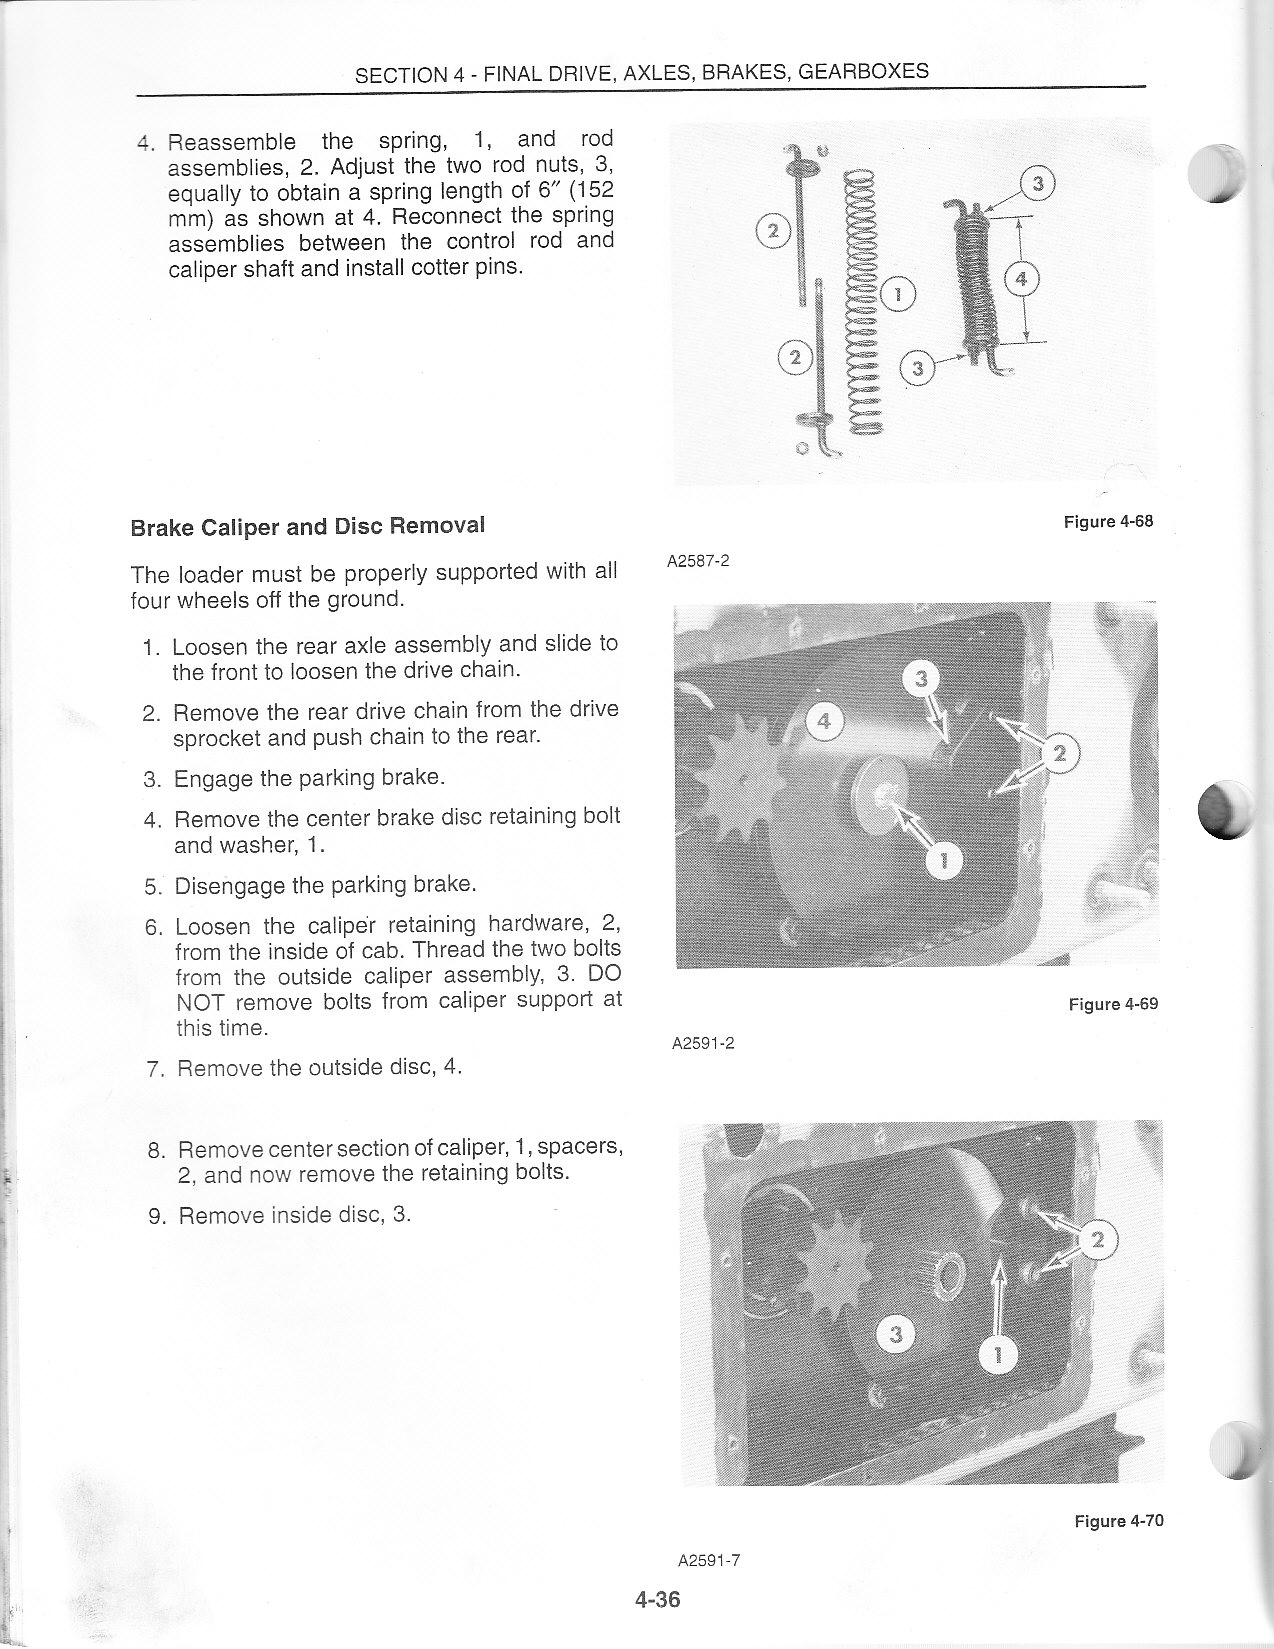 Ford 3930 Wiring Diagram from wiringall.com